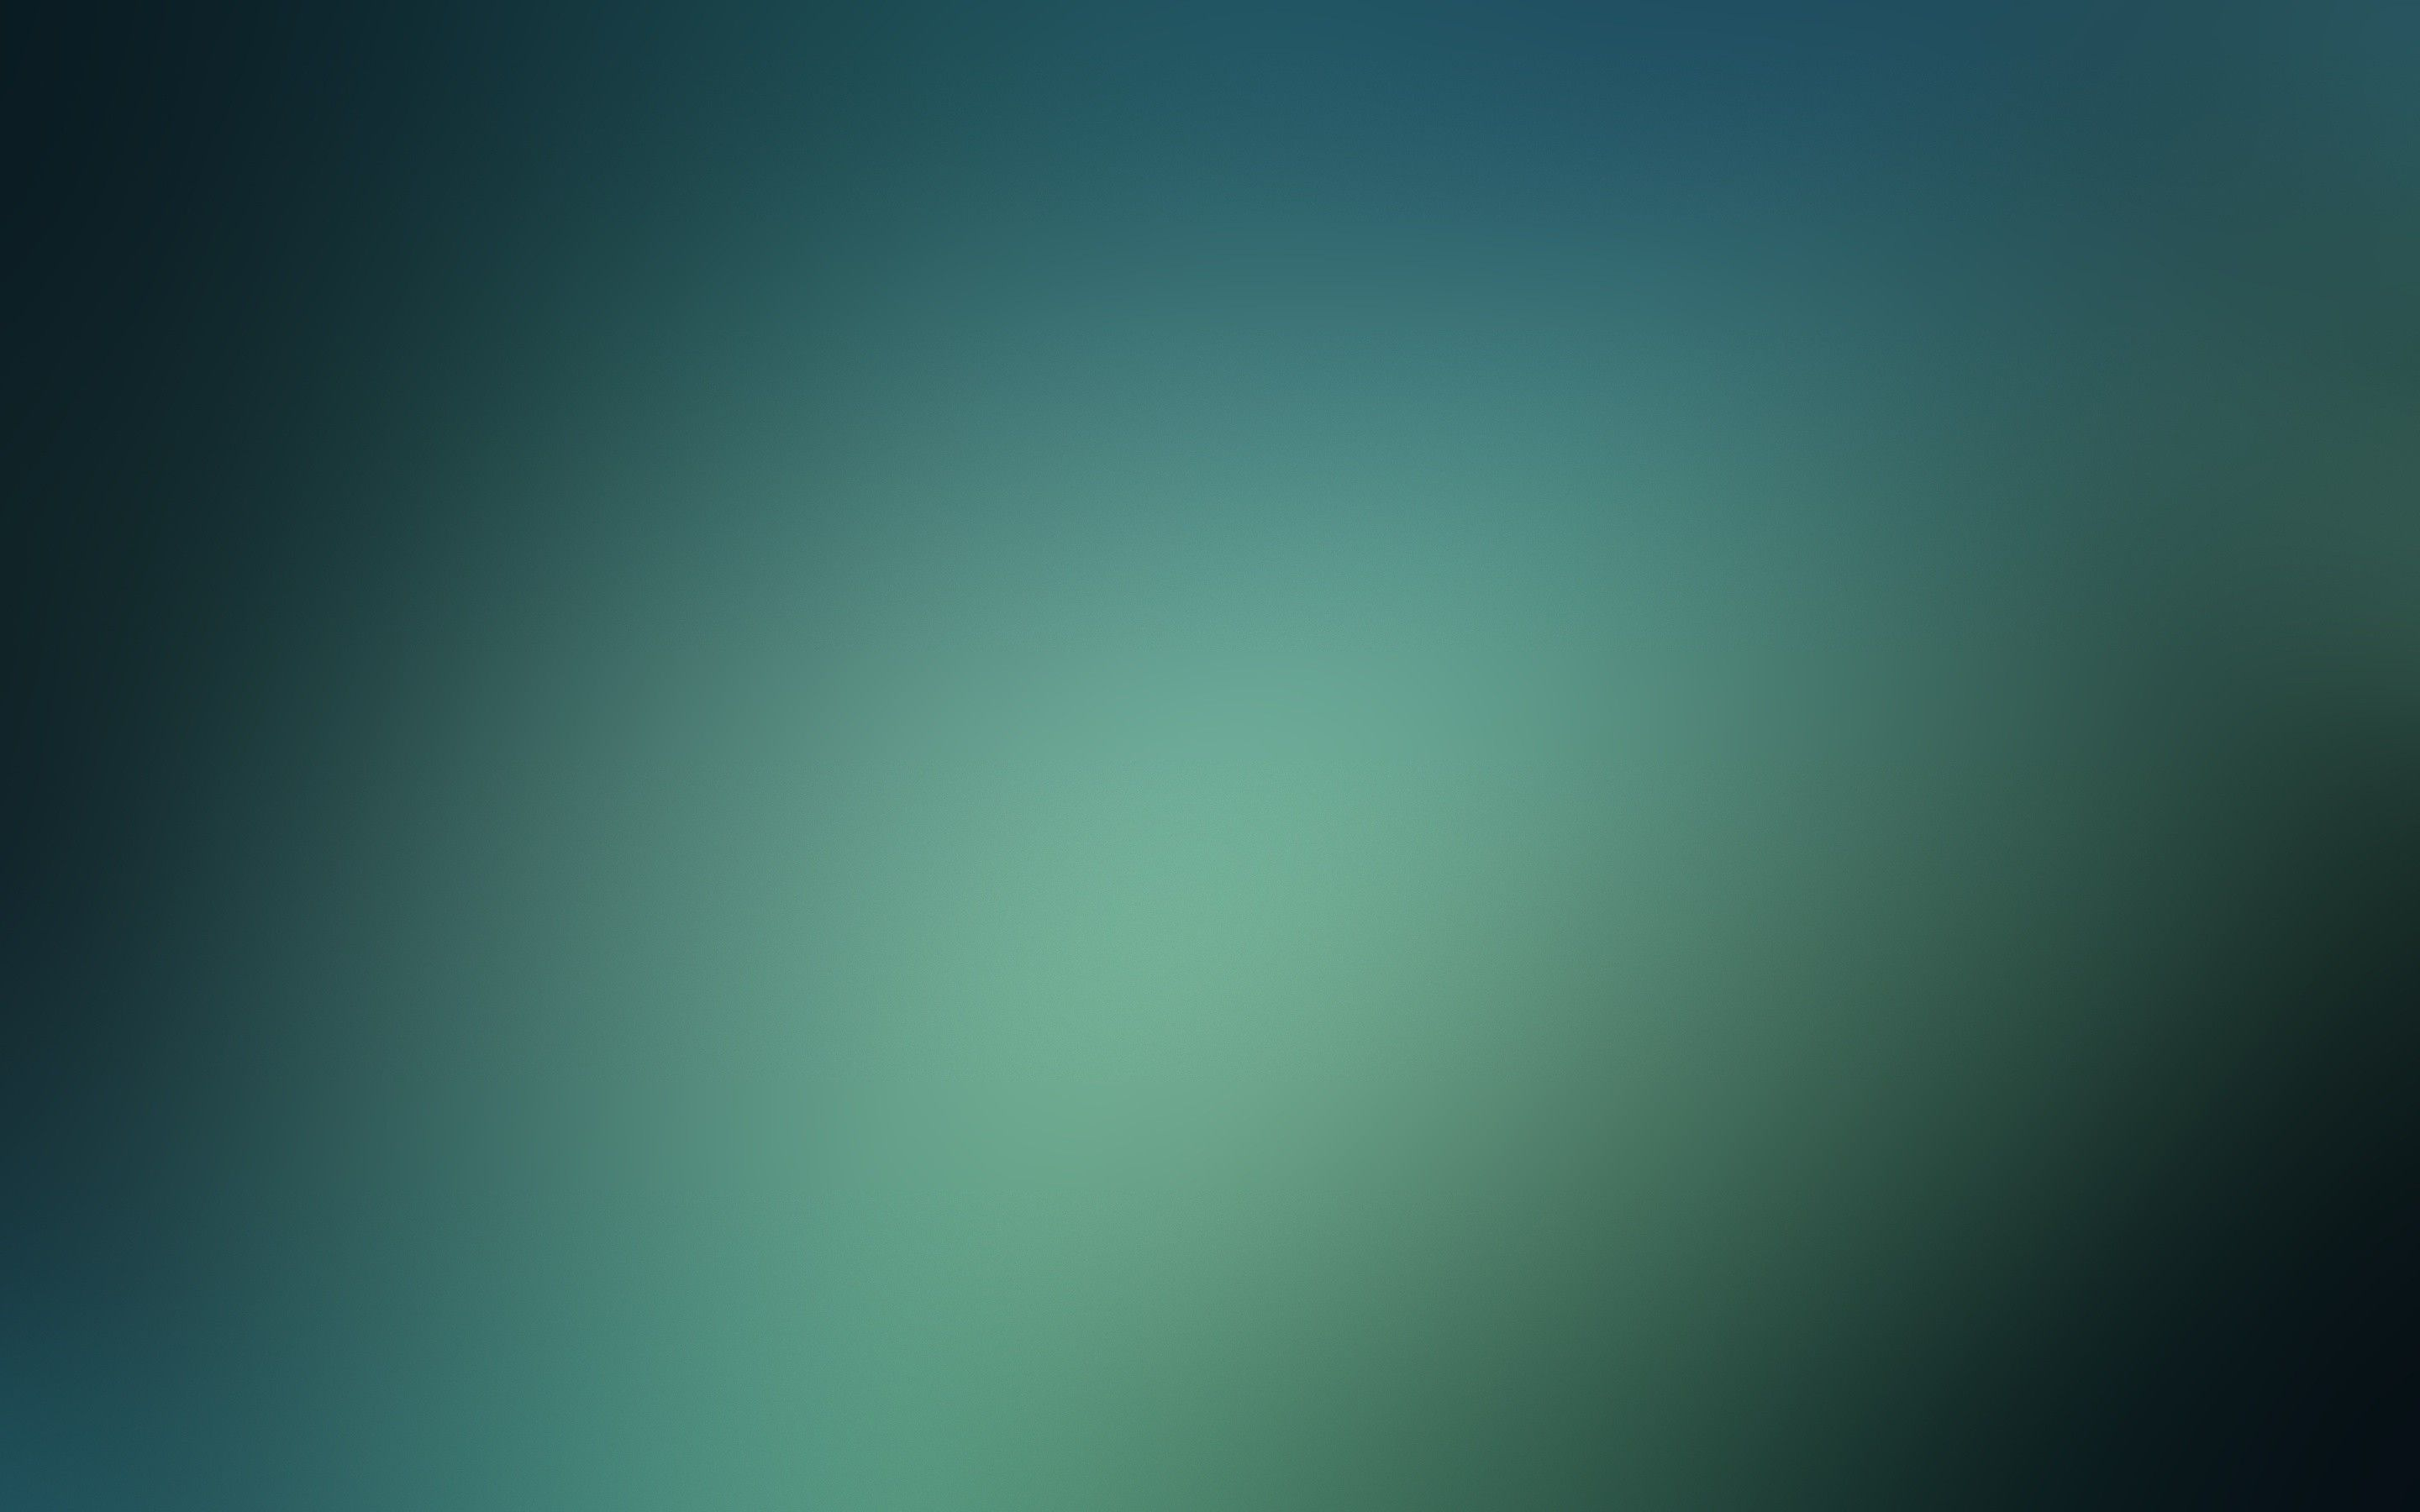 Simple Backgrounds Pictures - Wallpaper Cave